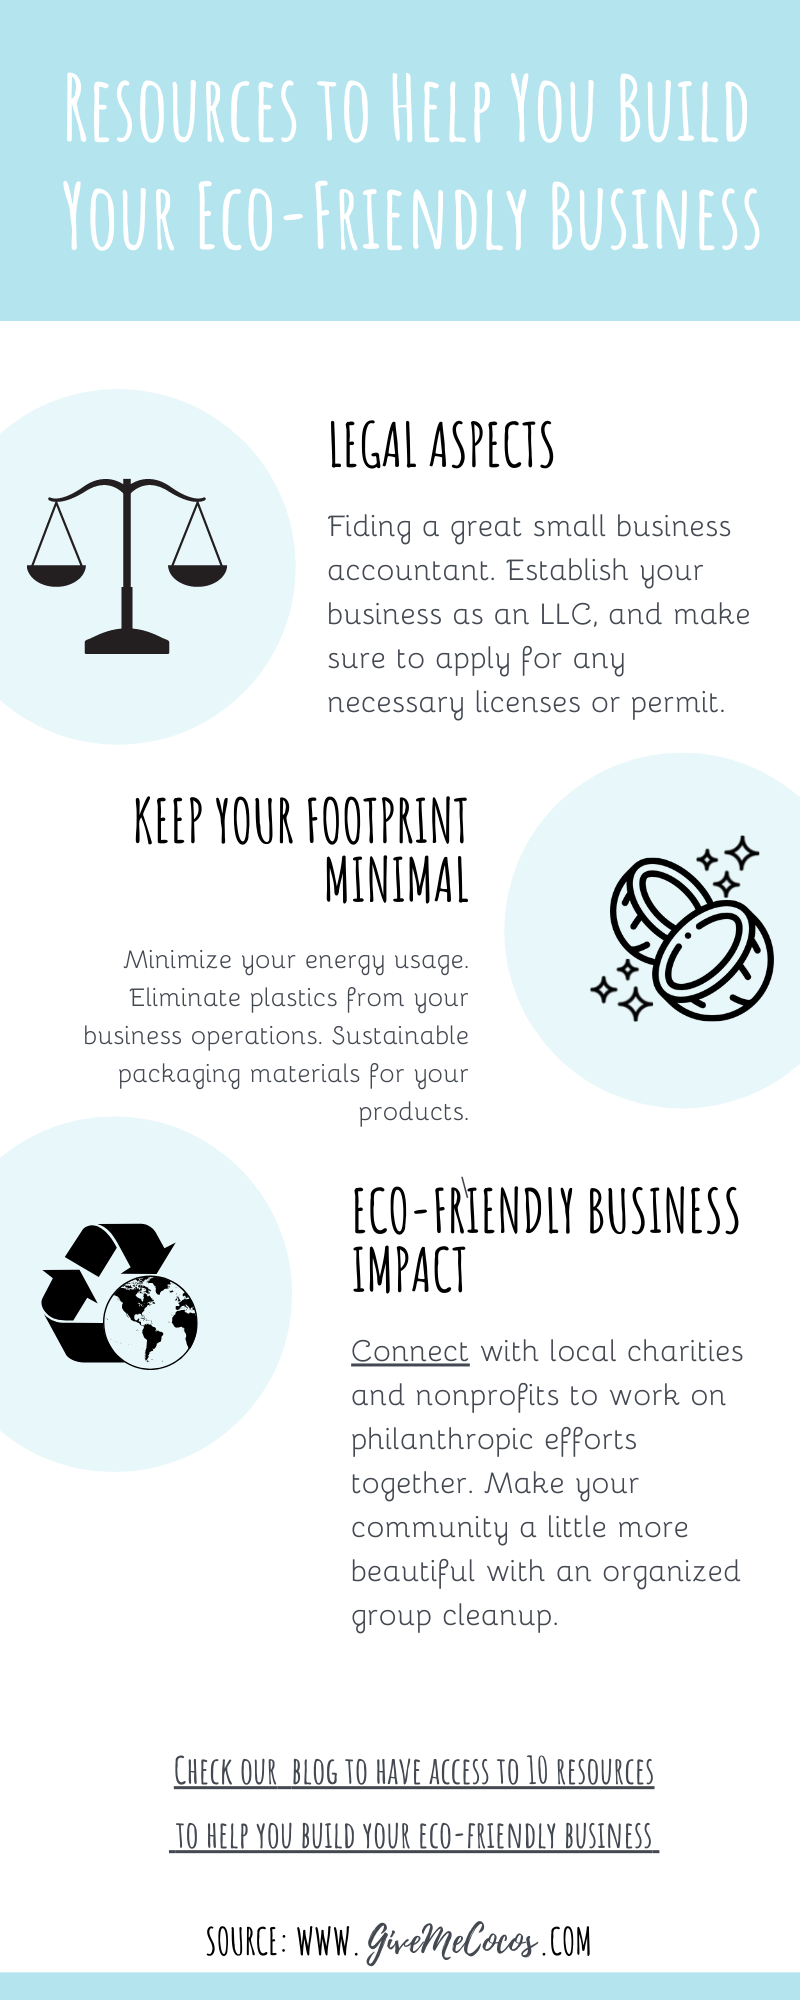 How To Build An Eco-Friendly Business